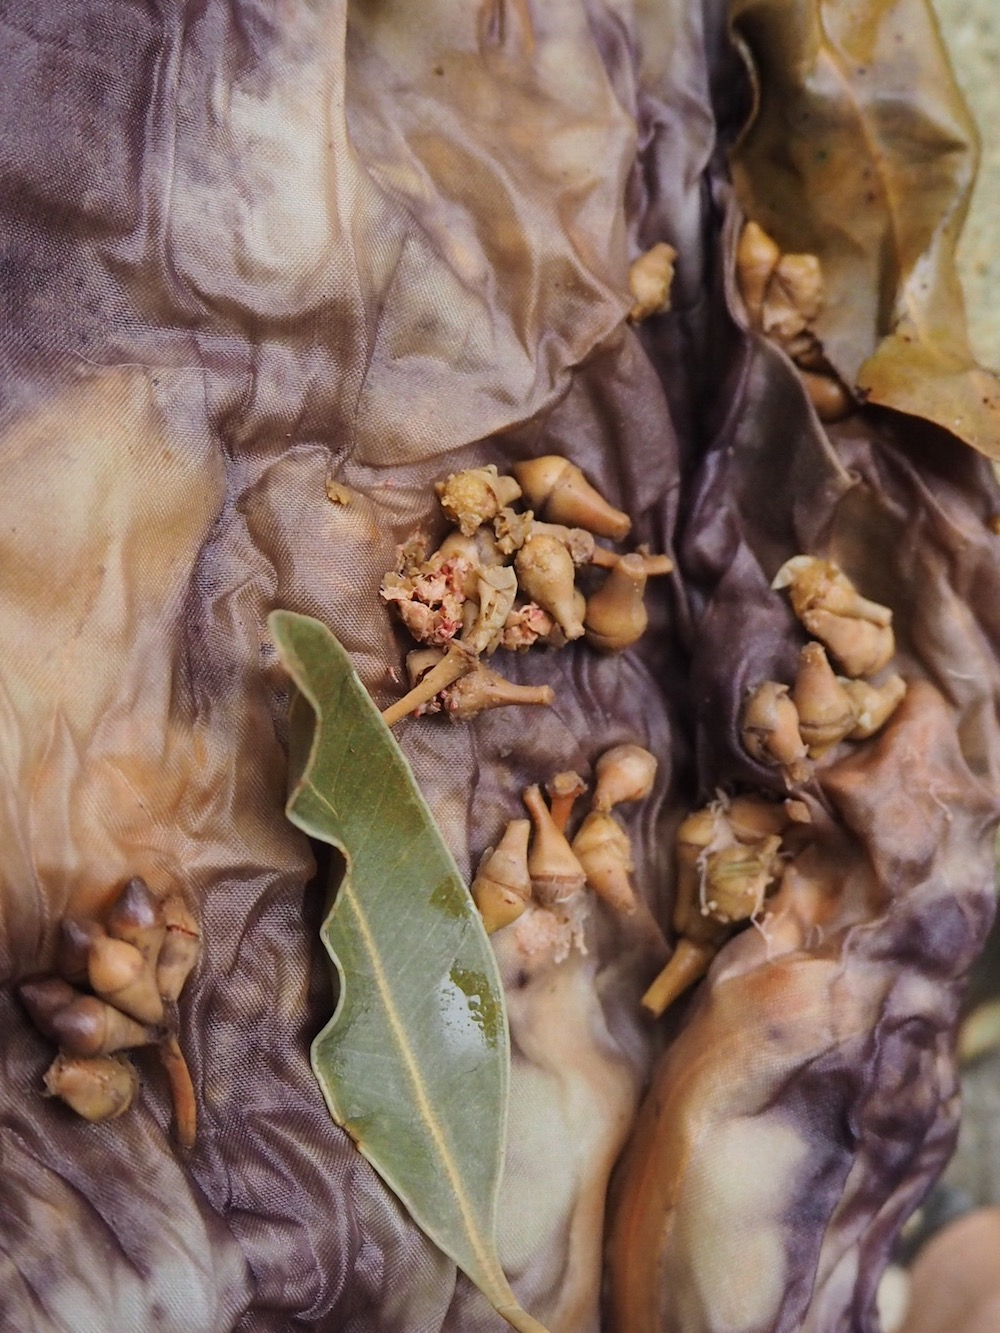 Ellie Beck_Natural Dye with Eucalyptus leaves How to DyeAF7124B2-2C92-4DE9-83D7-22A64C541D1B.JPG